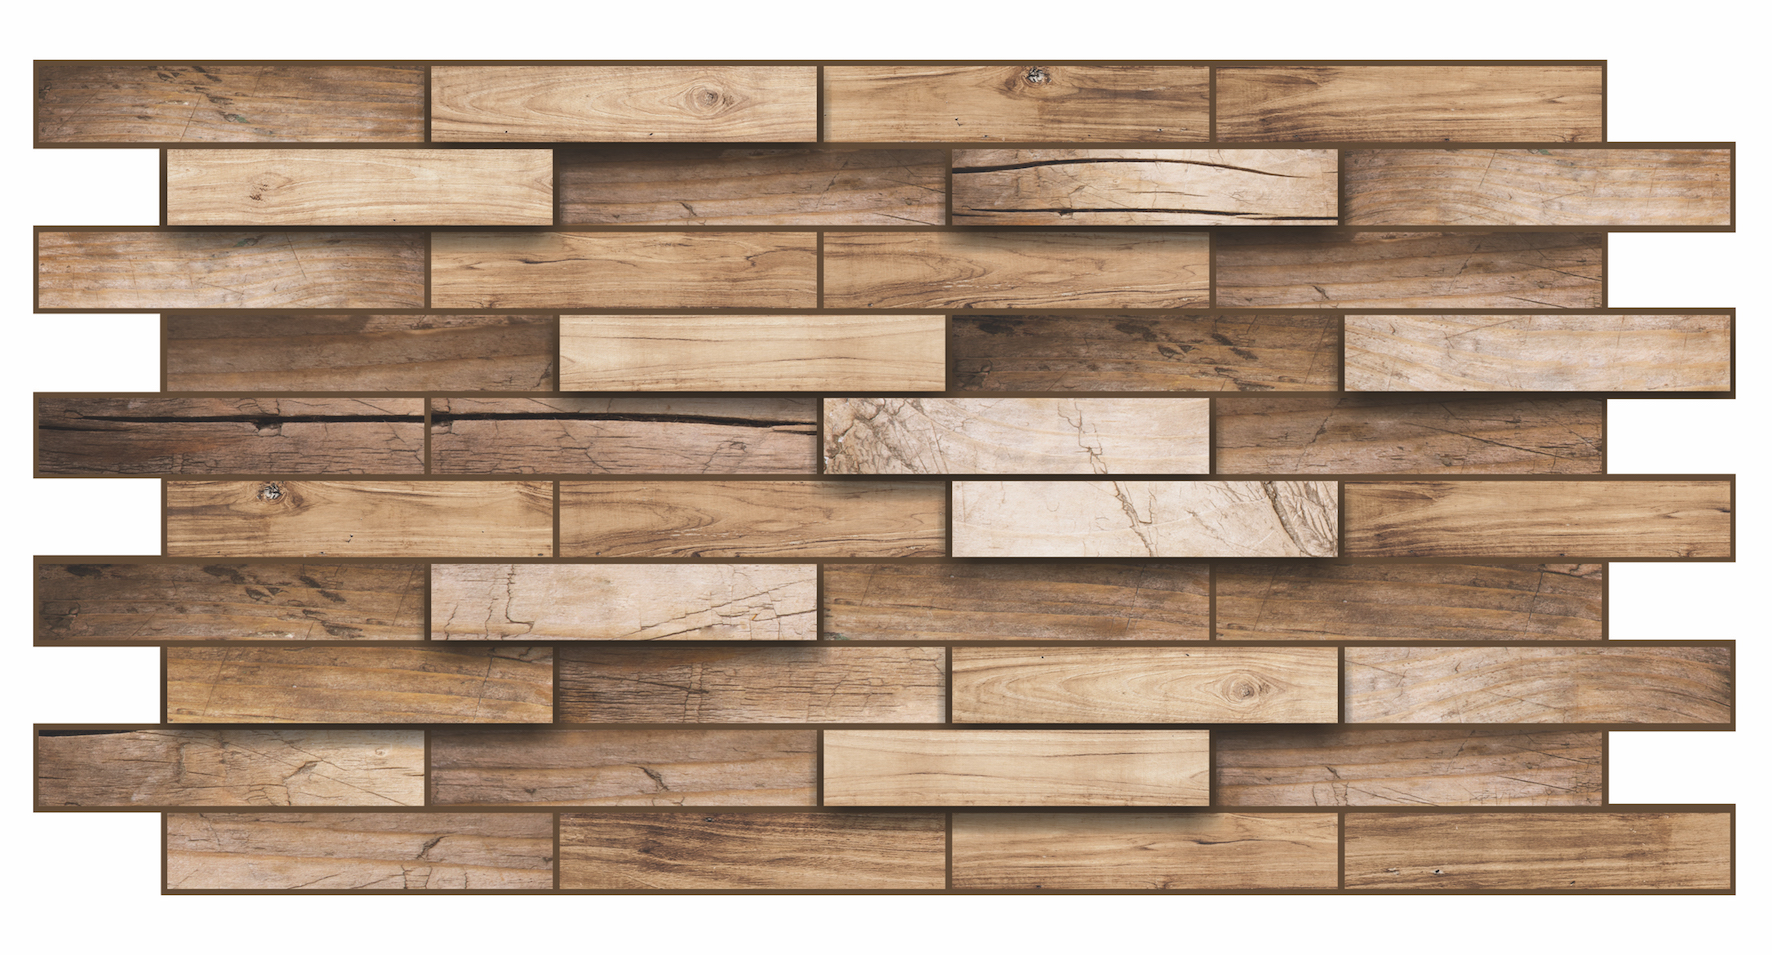 1 pvc dekorplatte mosaic wandverkleidung platten wand 98x48cm walnut ebay. Black Bedroom Furniture Sets. Home Design Ideas